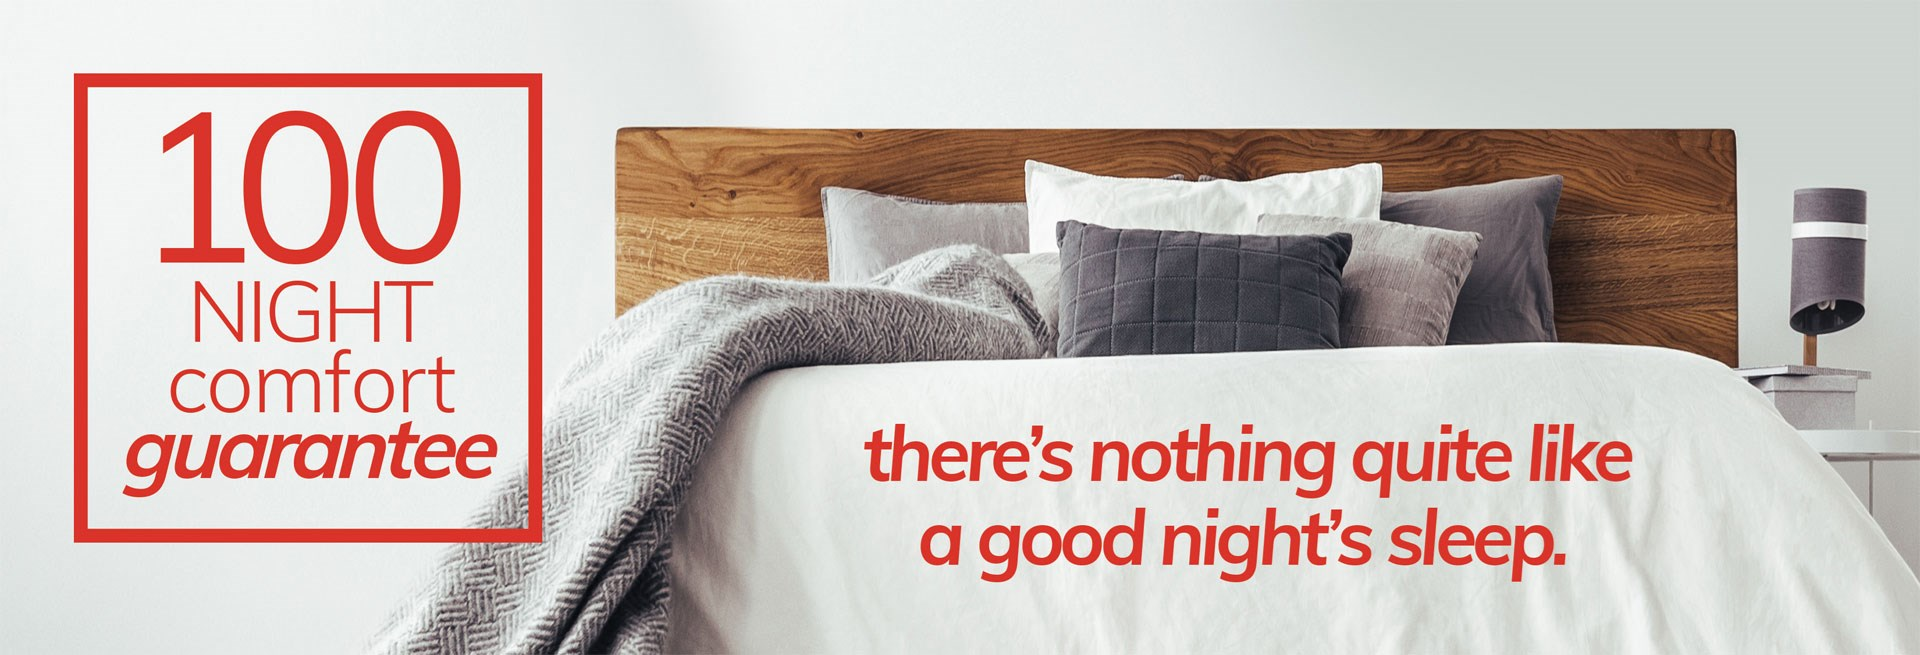 100 Night Comfort Guarantee | There's nothing quite like a good night's sleep.